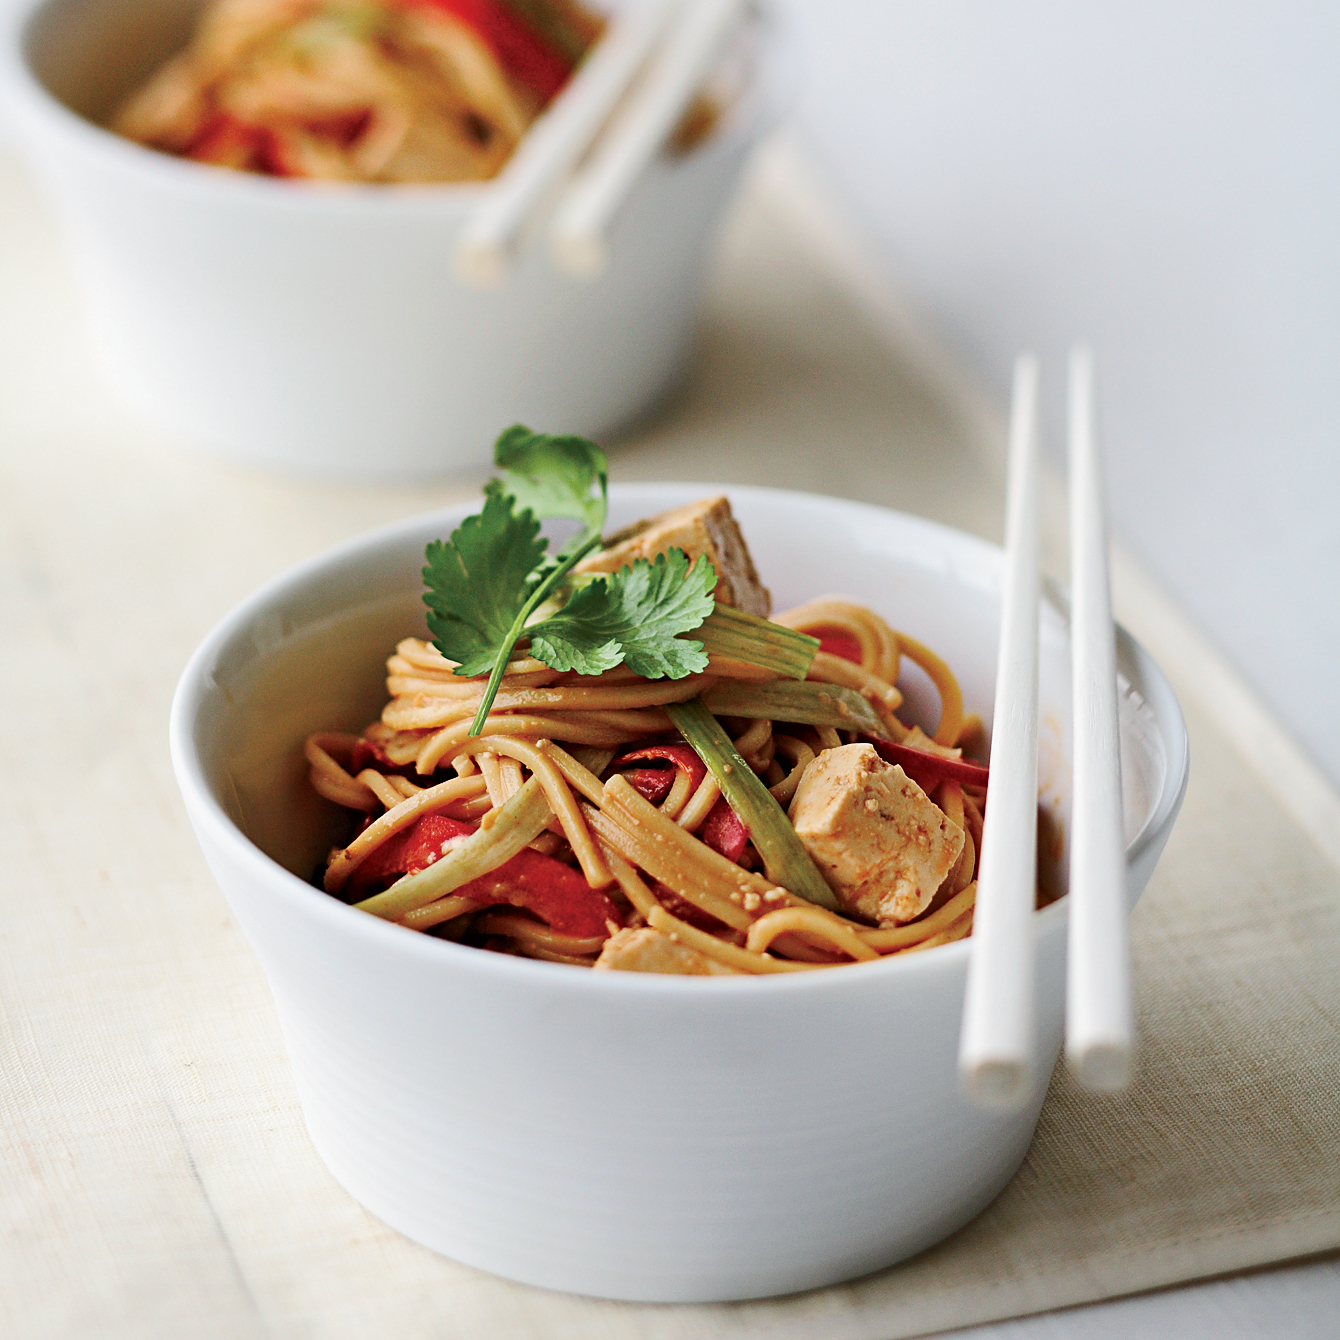 Cold Peanut Noodles with  Tofu and Red Peppers